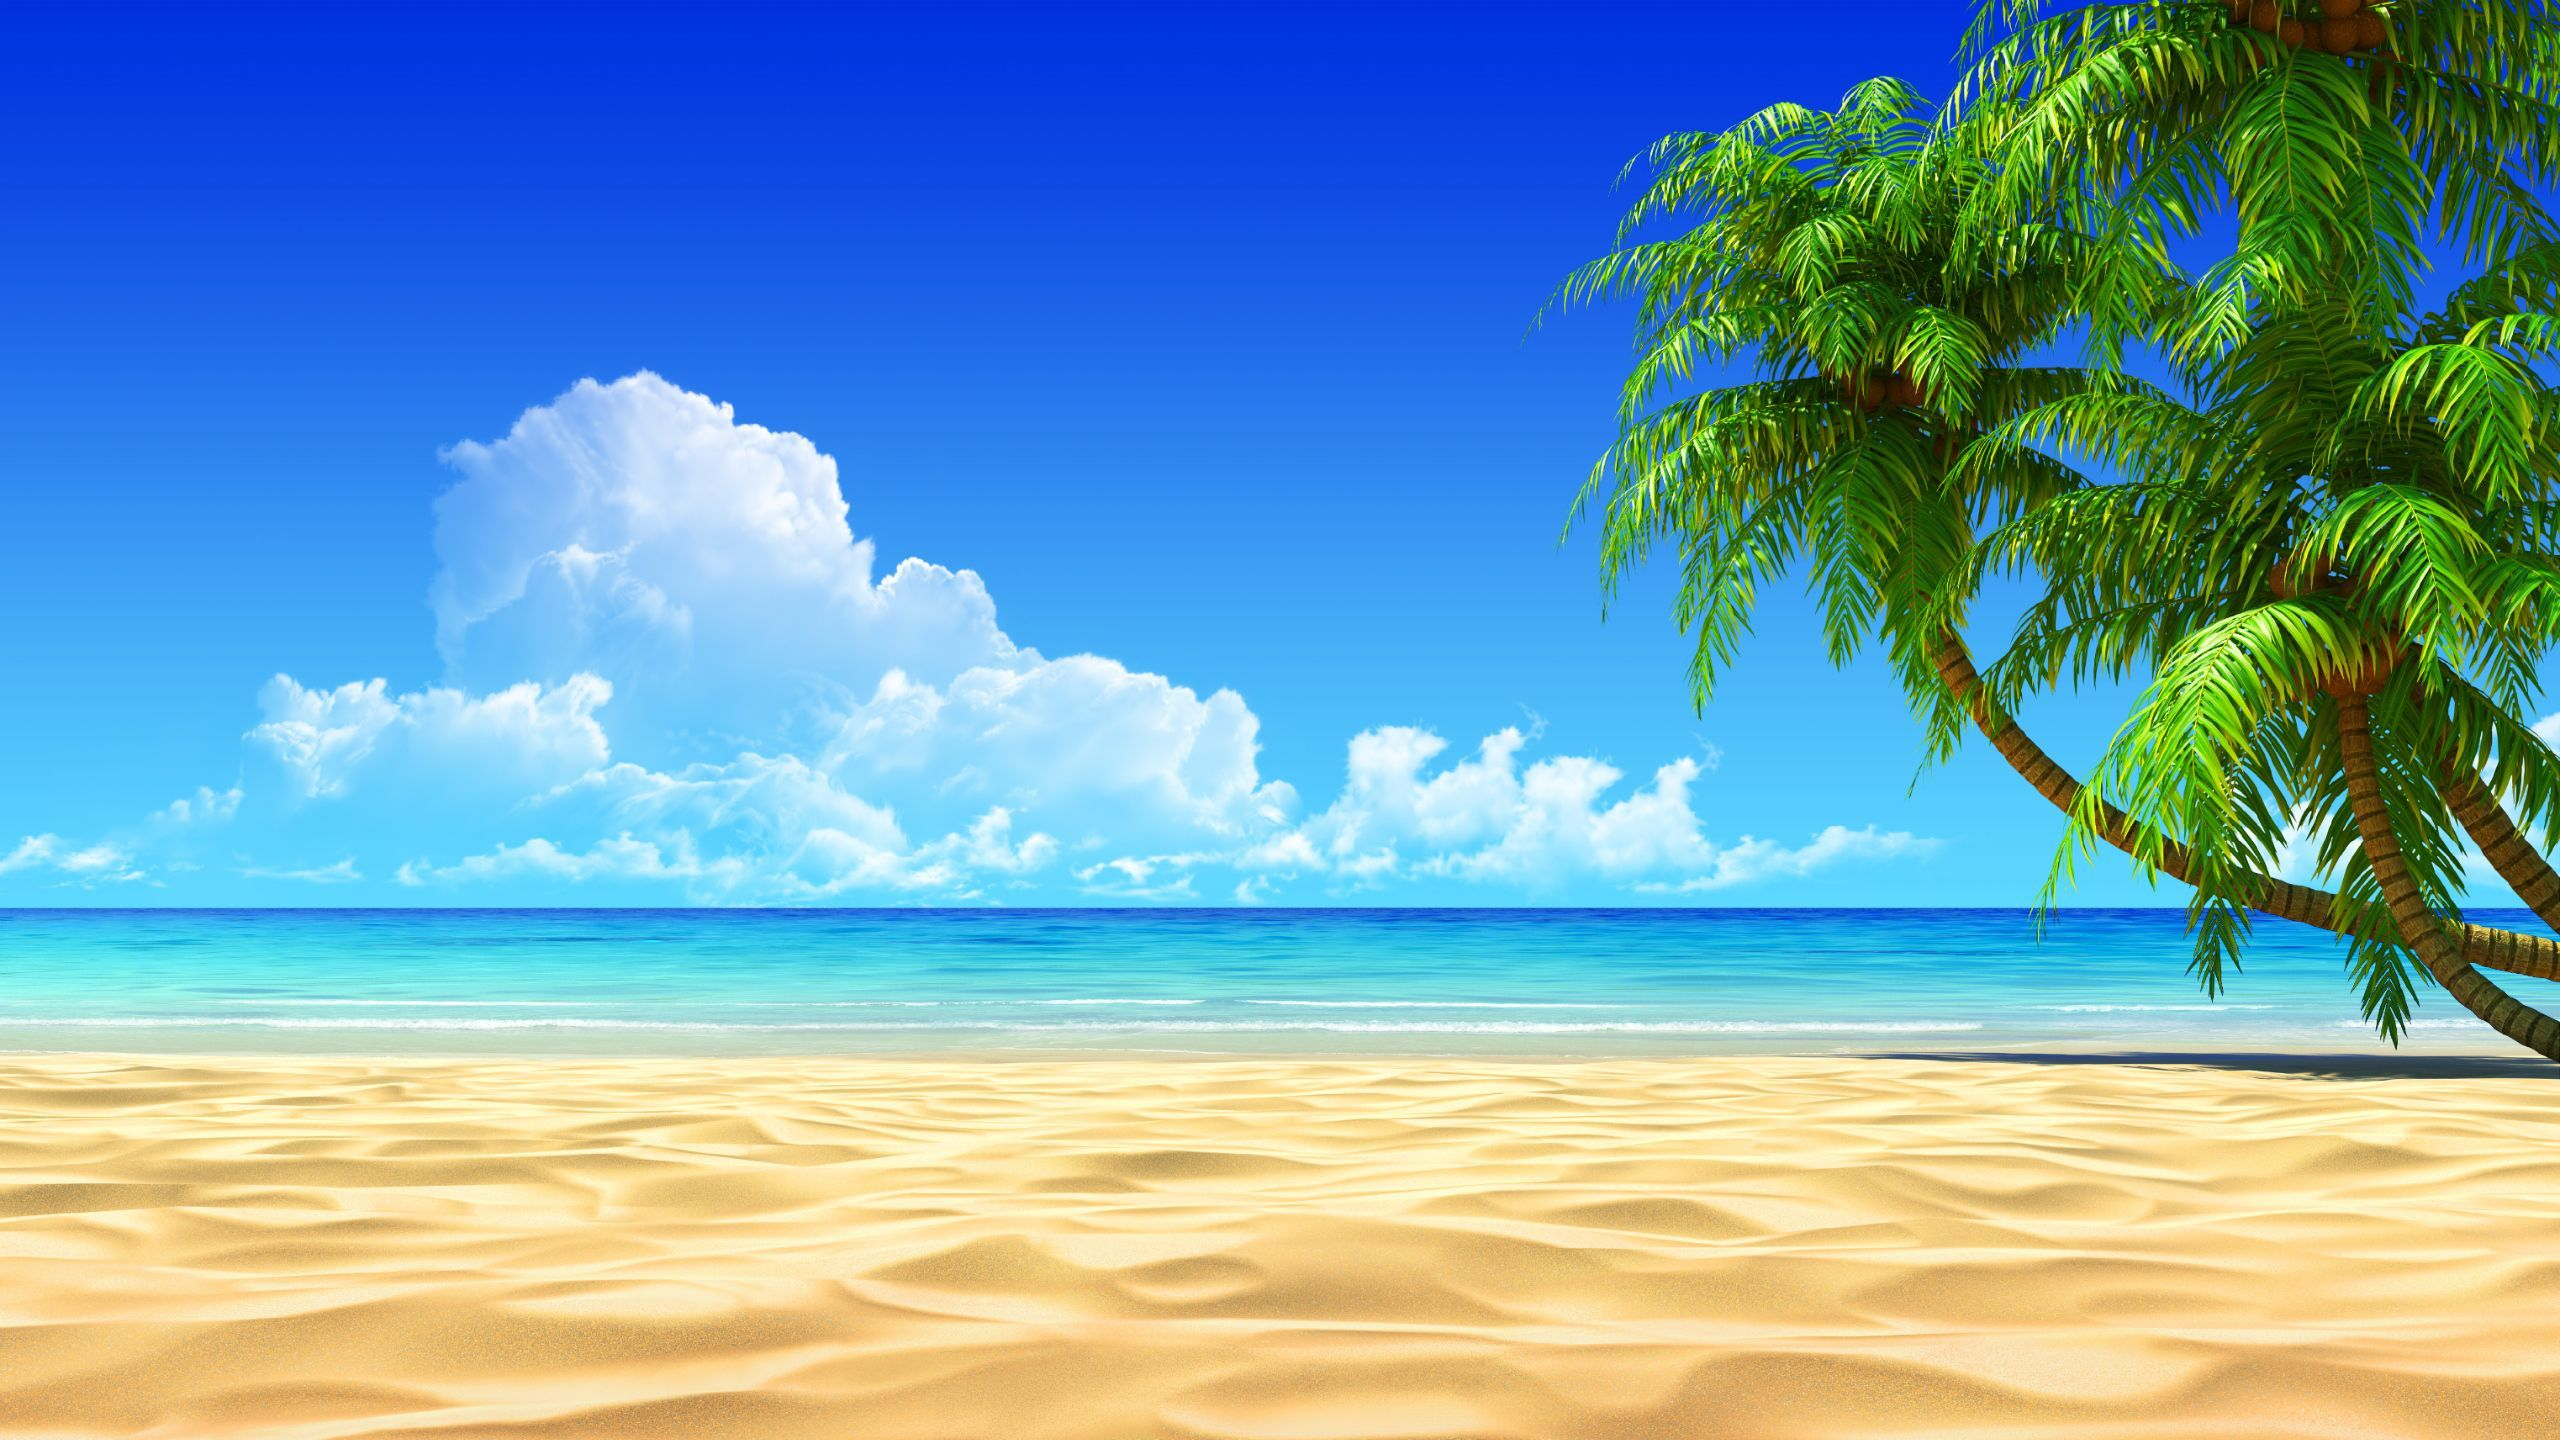 Beach Pc Wallpapers Top Free Beach Pc Backgrounds Wallpaperaccess